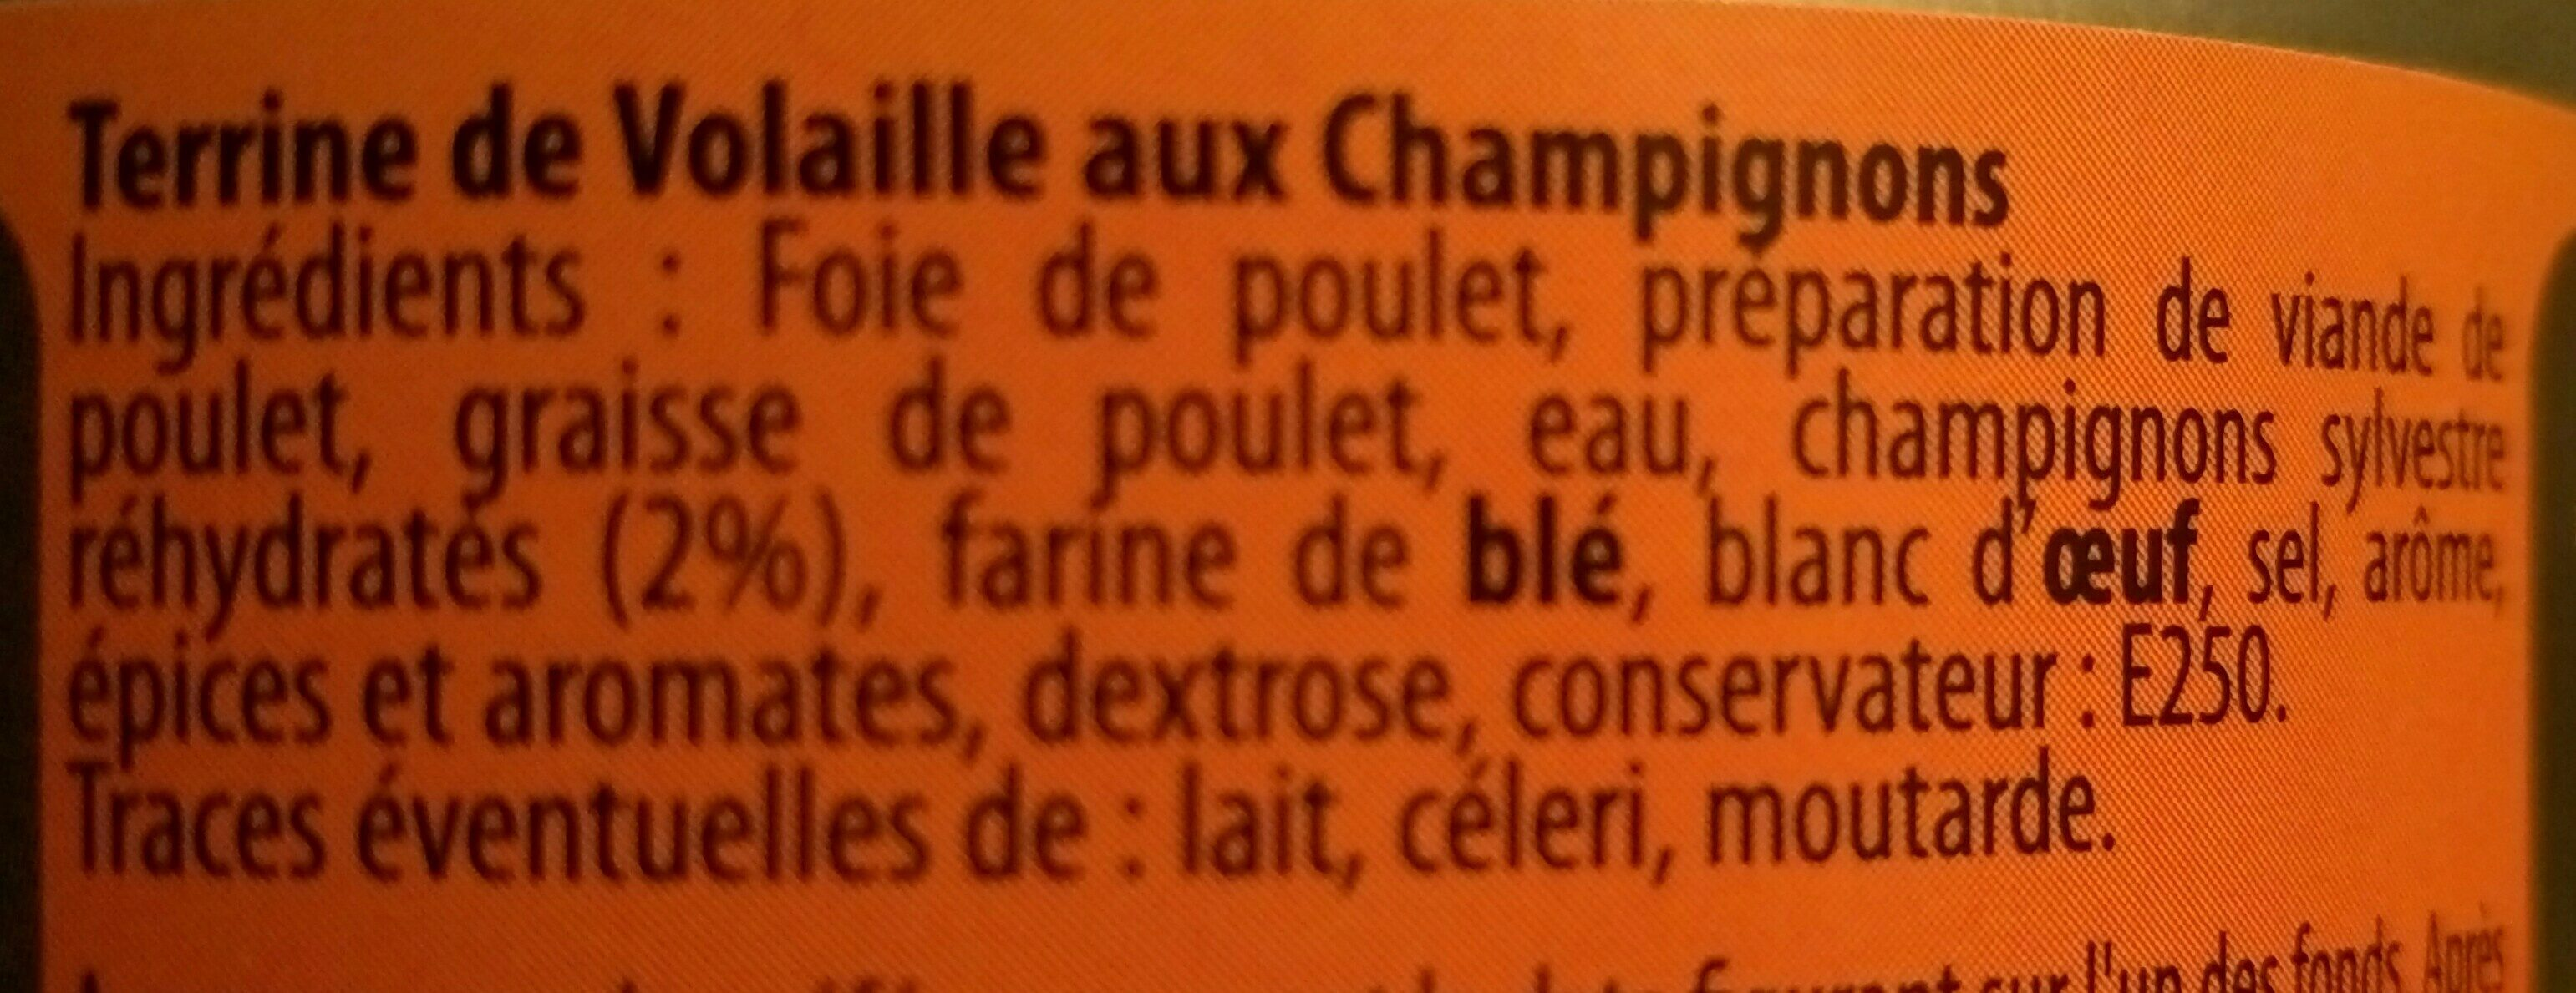 Terrine de Volaille aux Champignons - Ingredients